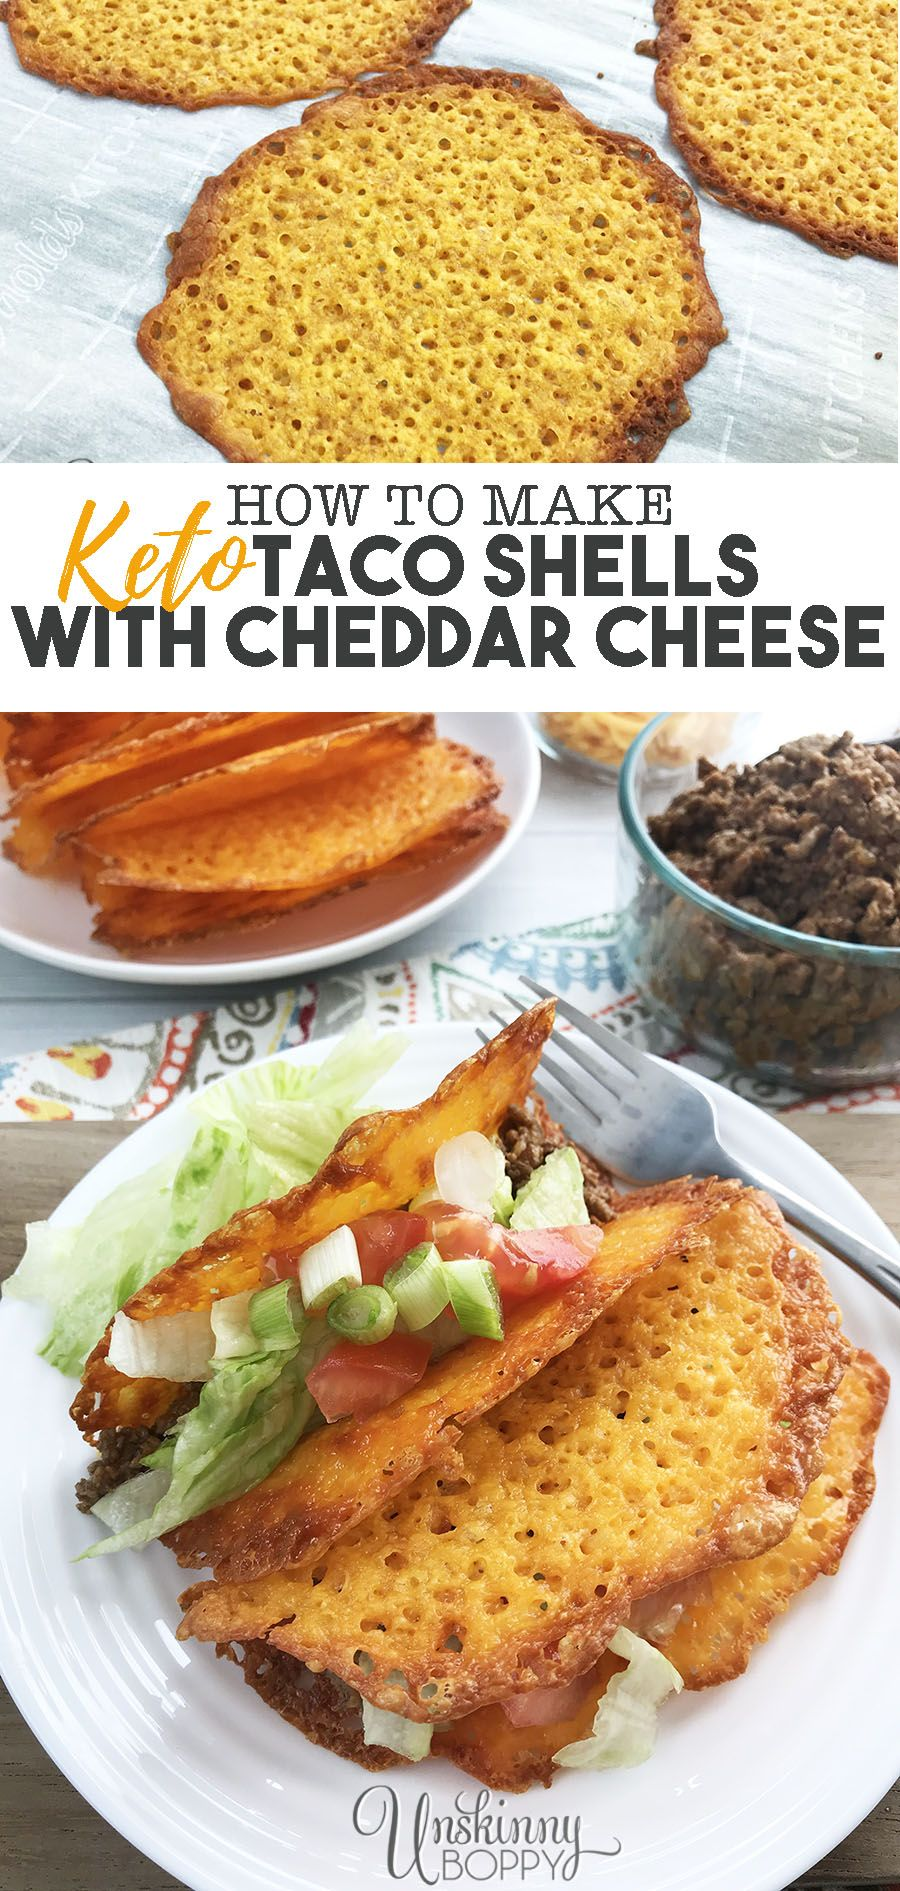 How to Make Keto Cheddar Cheese Taco Shells